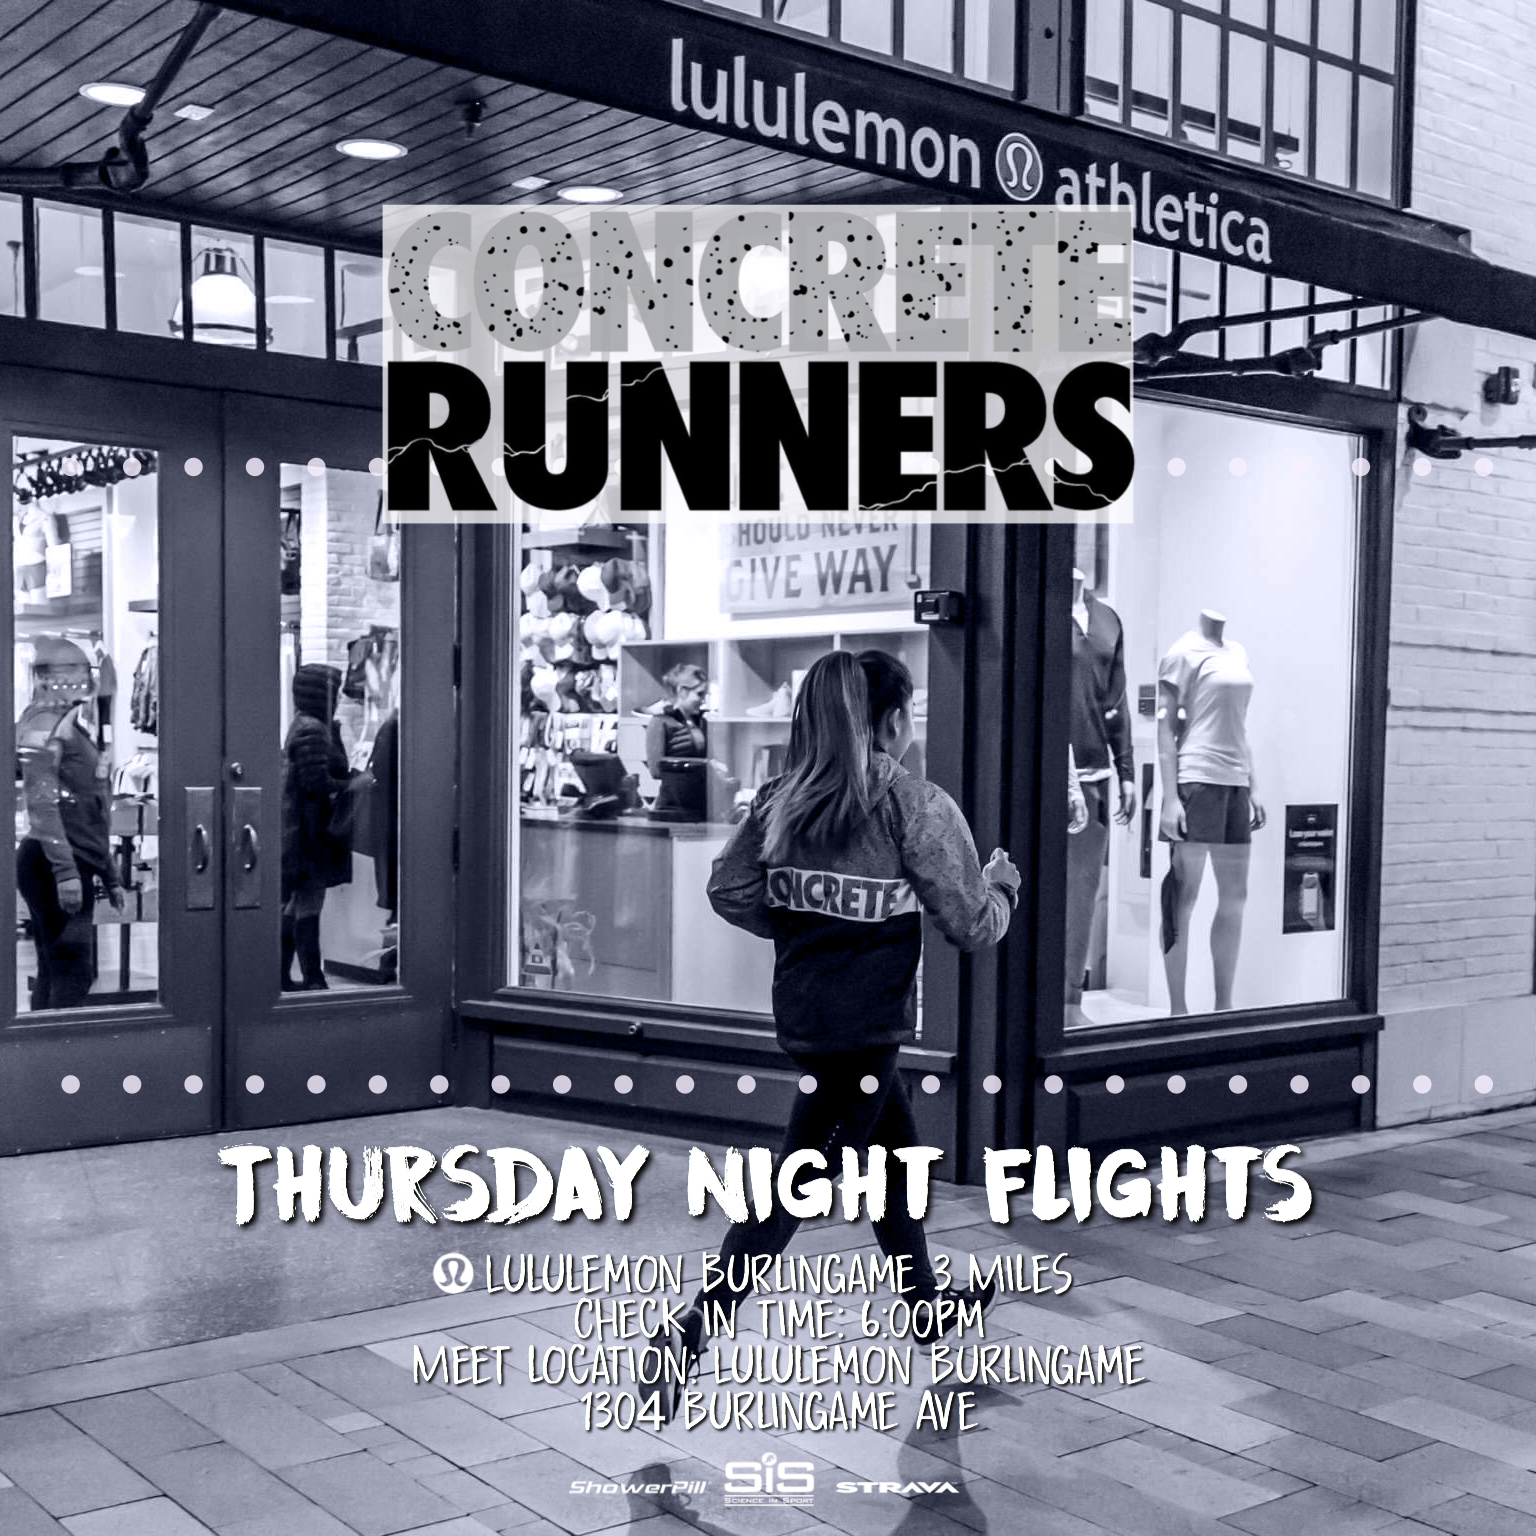 Join Concrete Runners for Thursday Night Flights. We'll be taking off for a 3 mile run with Lululemon Burlingame.  📅 Date: Thursday 4/19  📍Meet Location: Lululemon Burlingame  🕧 Meeting time: 6:00pm  🛫 Take off: 6:30pm  👩🏻✈️Pilot(s): Sam B & Jess DL  👟Distance: 3 miles  👜 Bag Storage: YES  *️⃣ For each Track Tuesday and Thursday Night Flight that you successfully register and check in to during the the 2018 season, you will be entered into a raffle that could win you free gear, or even a trip as our GRAND PRIZE!  *️⃣ To join our run club on Strava, visit  www.concreterunners.com/strava .